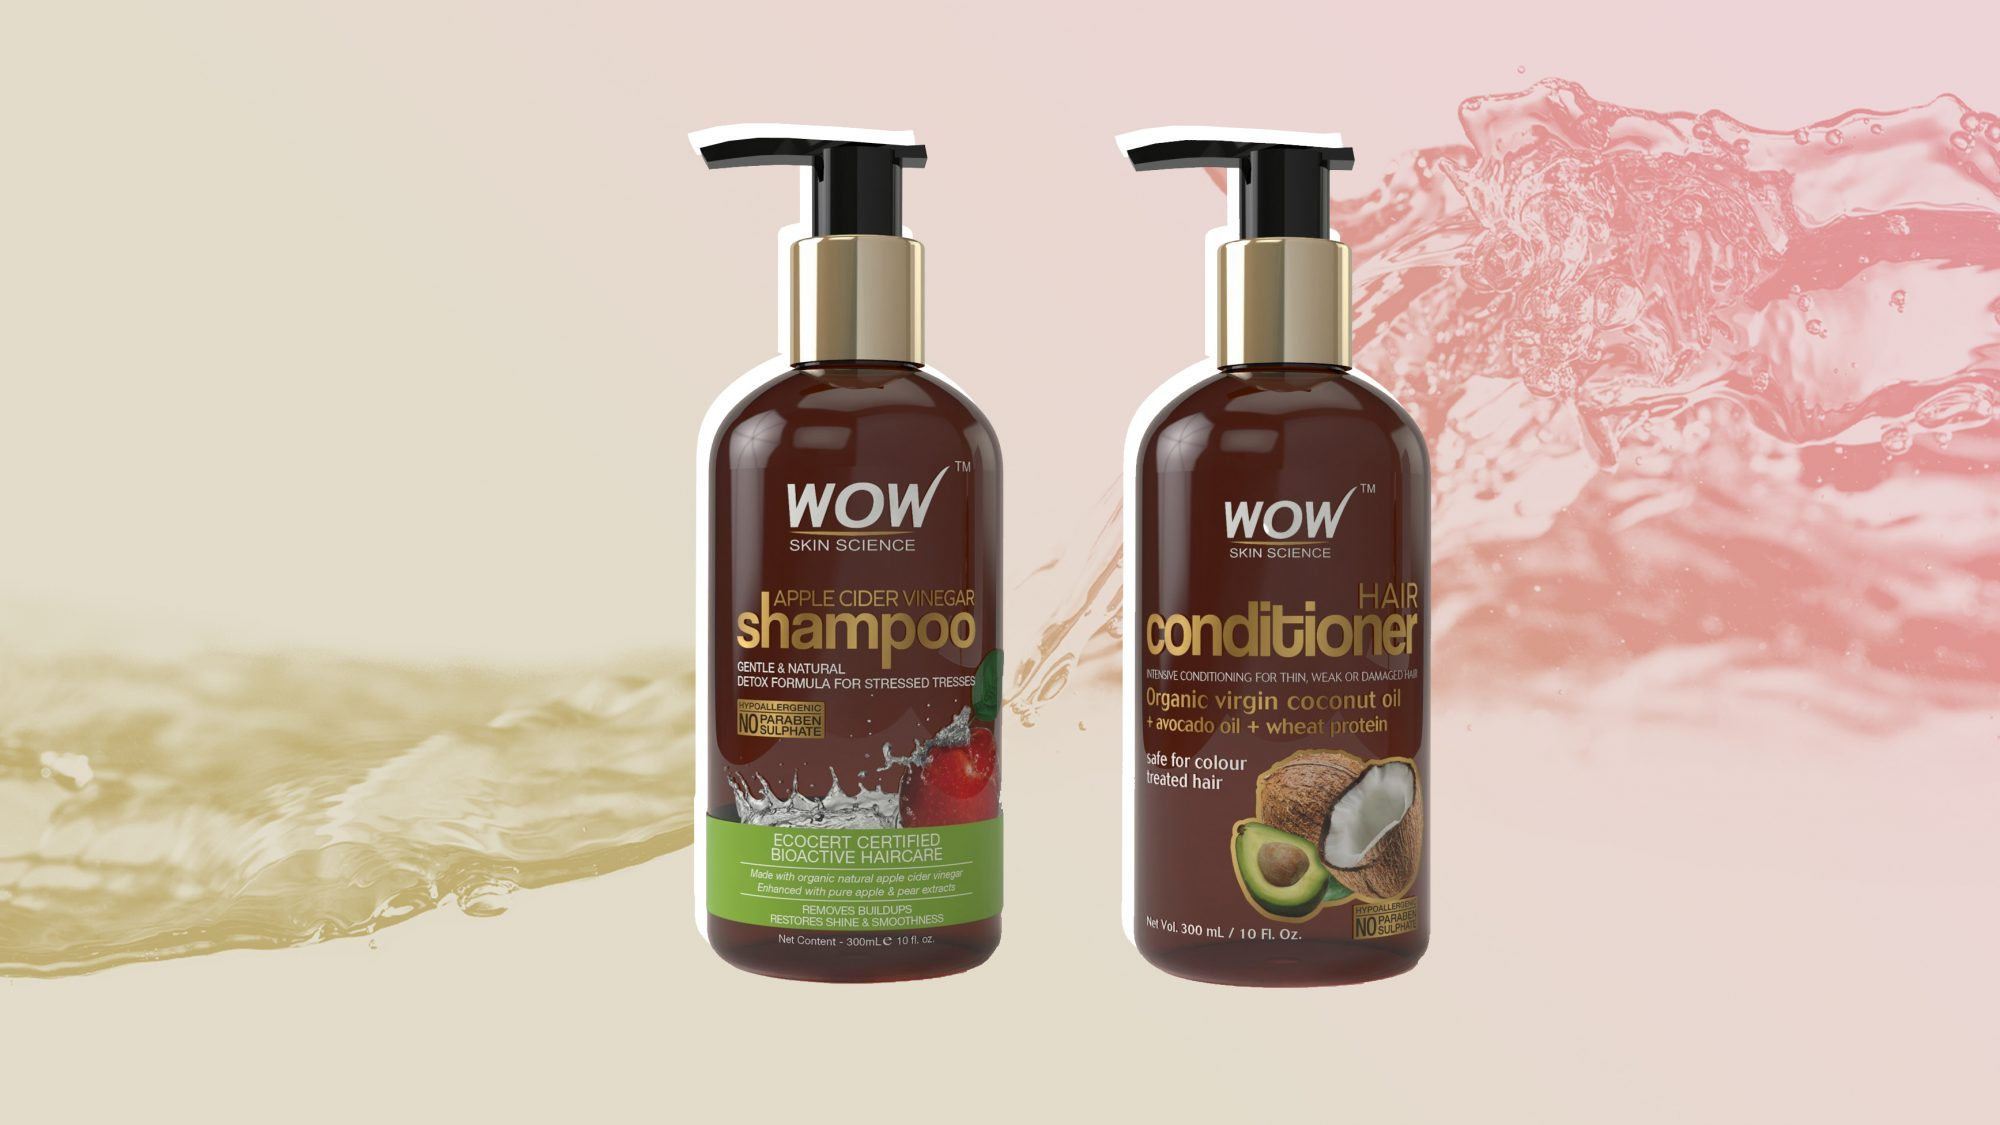 WOW Apple Cider Vinegar Shampoo  Wow Hair Conditioner Set Sulphate  Paraben Free woman beauty product health